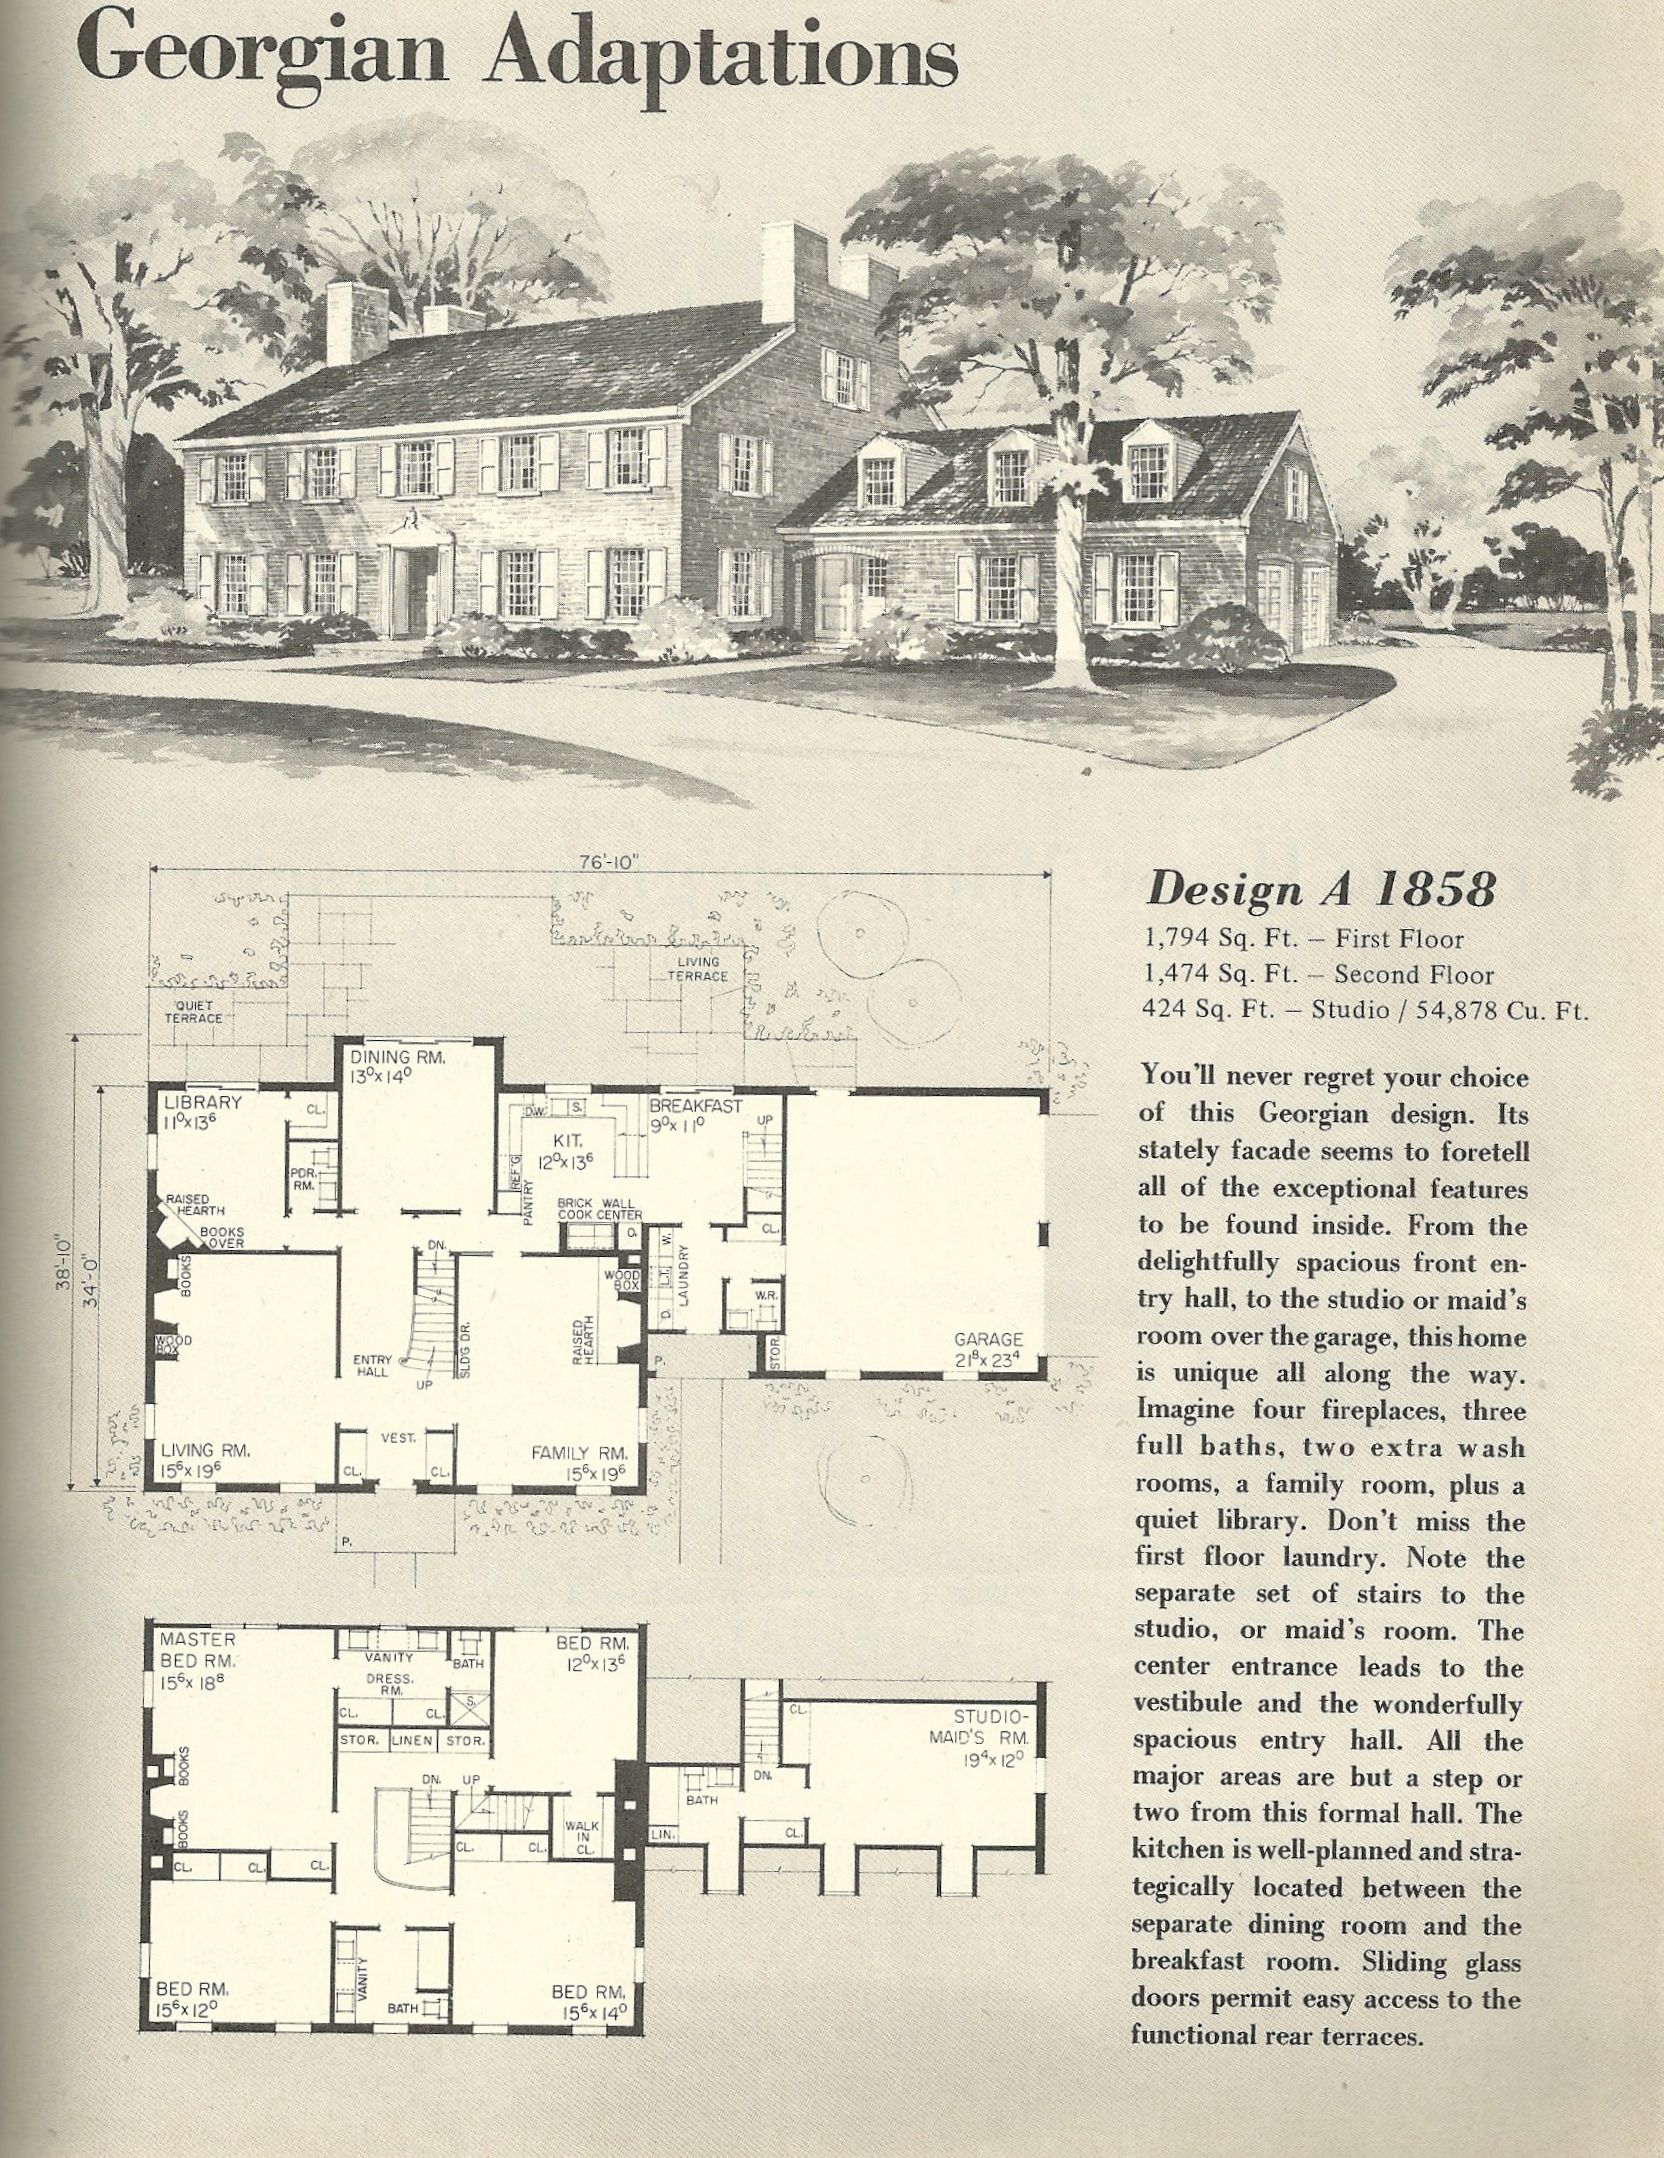 Vintage house plans georgian 1858 antique alter ego for Vintage home plans